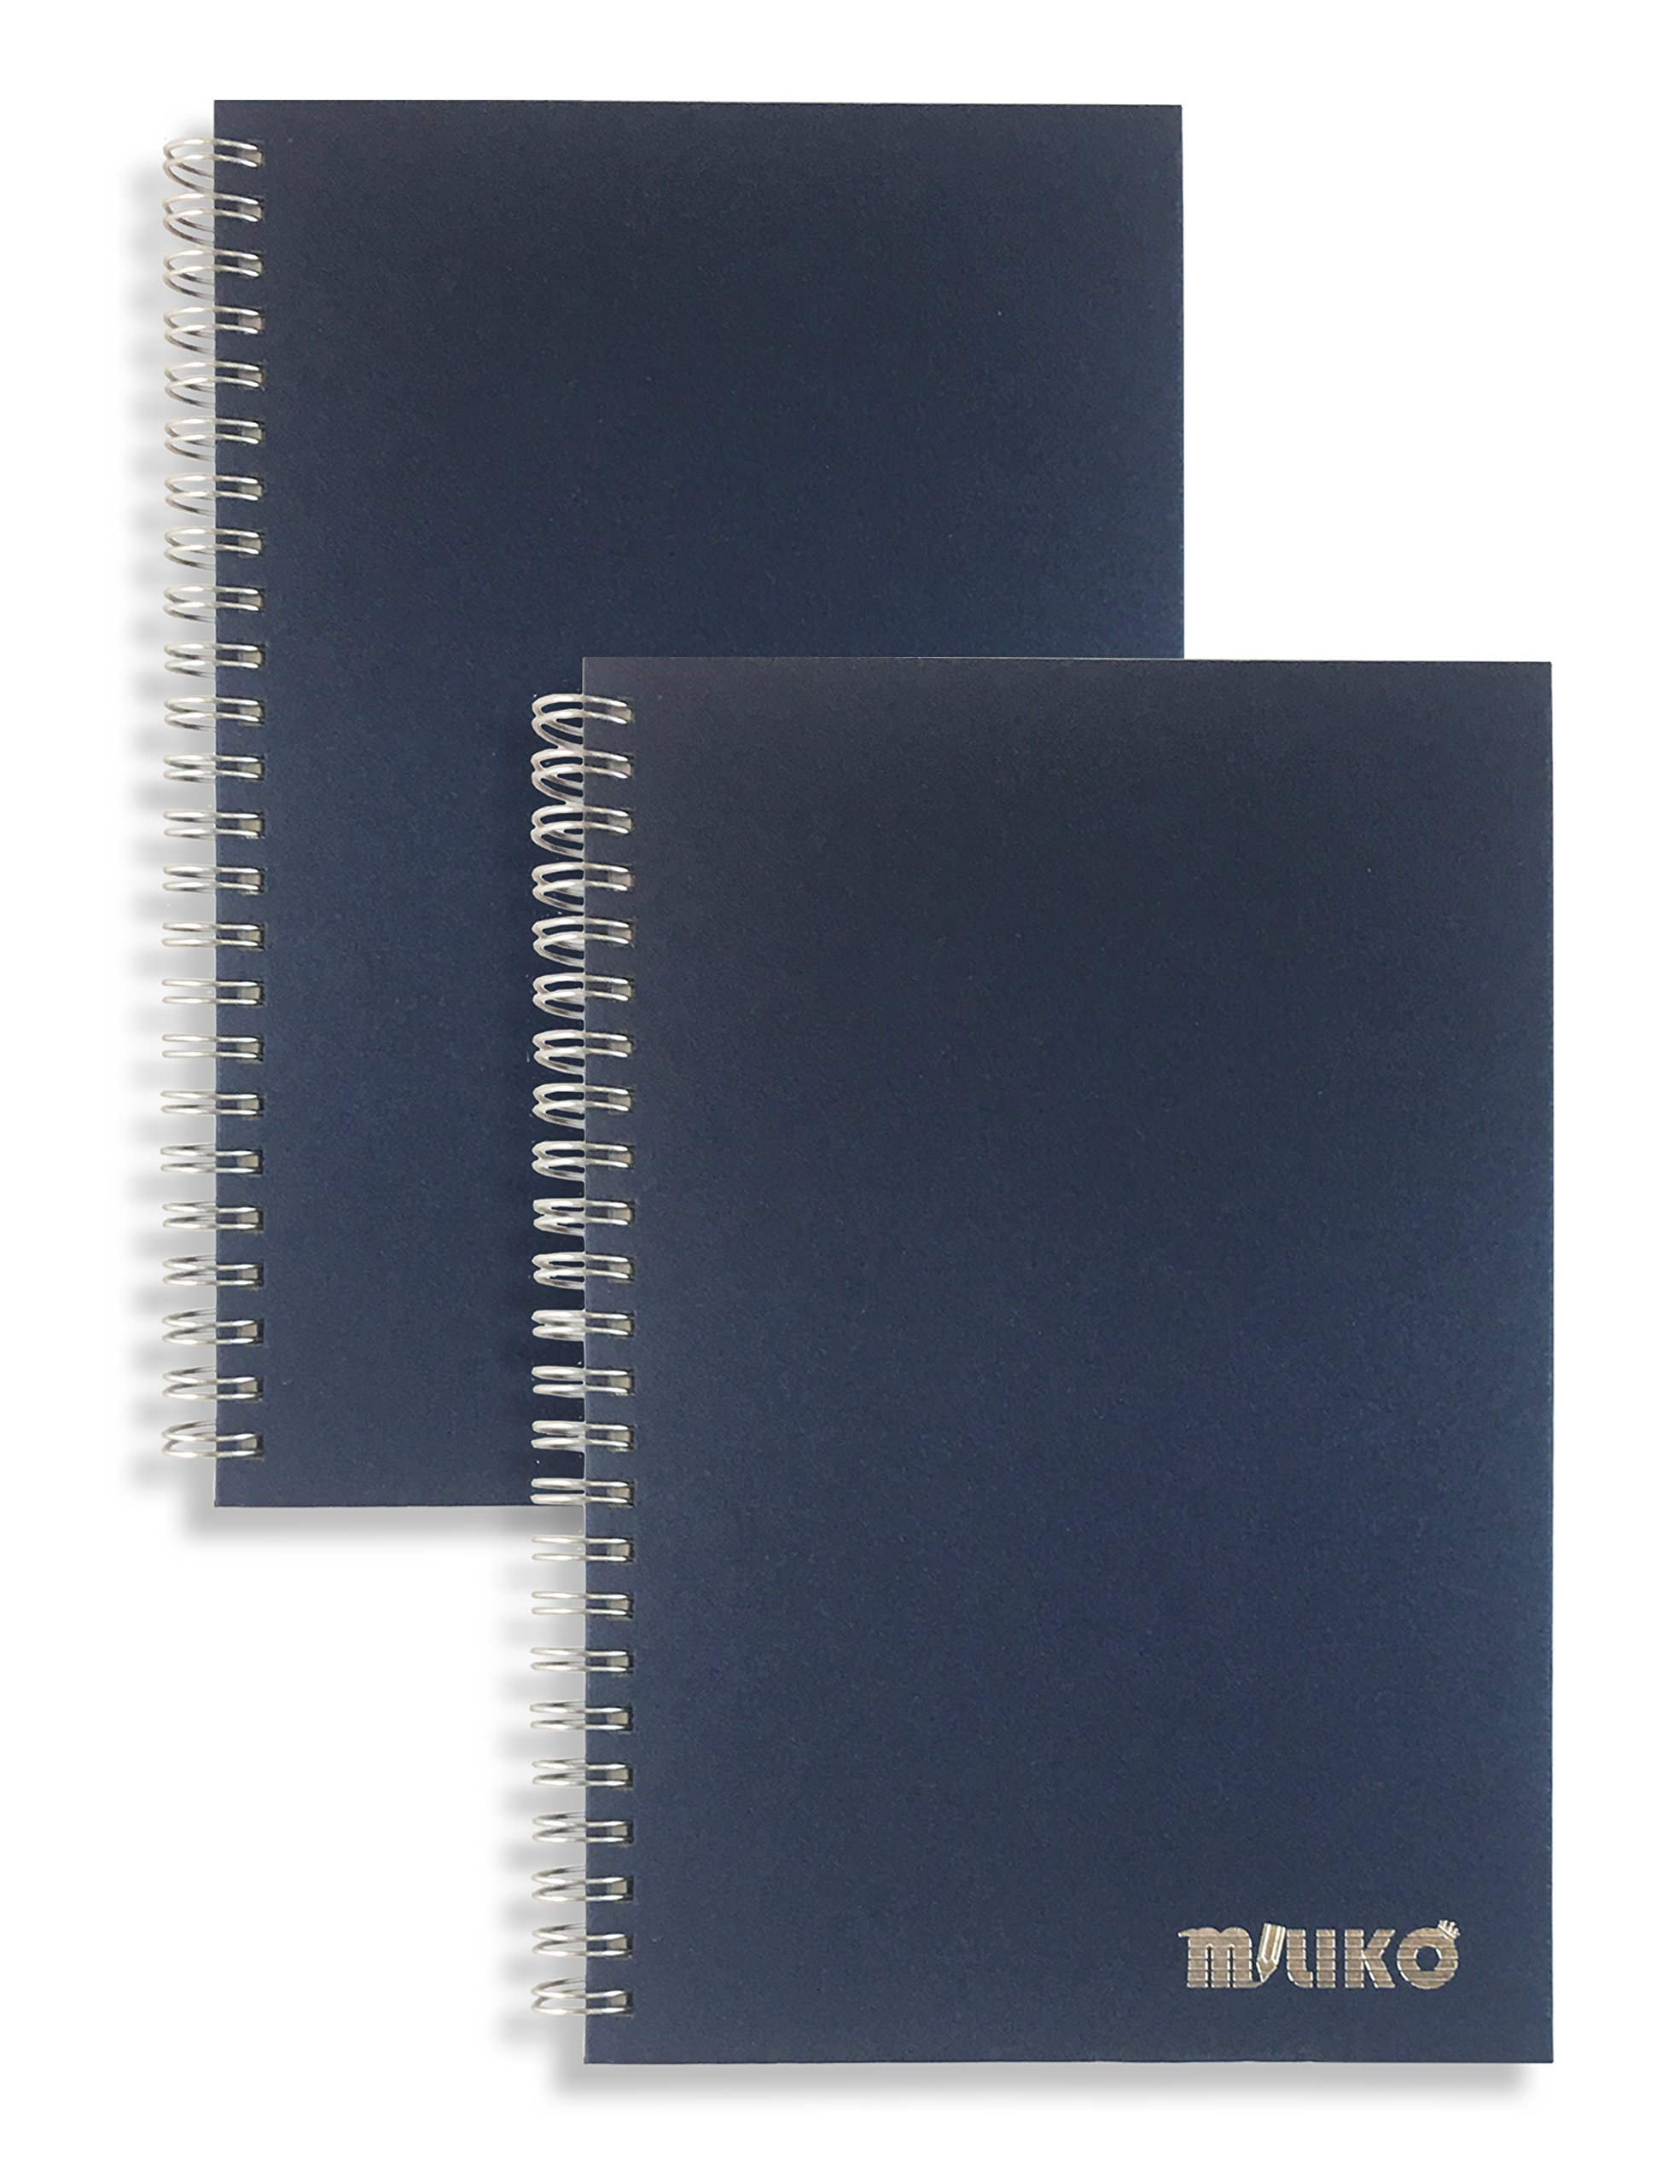 Miliko A5 Size Kraft Paper Hardcover Ruled Wirebound/Spiral Notebook/Journal-2 Notebooks Per Pack-70 Sheets (140 Pages)-8.27'' x 5.67'' (Silver Binding Rings, Blue Ruled)